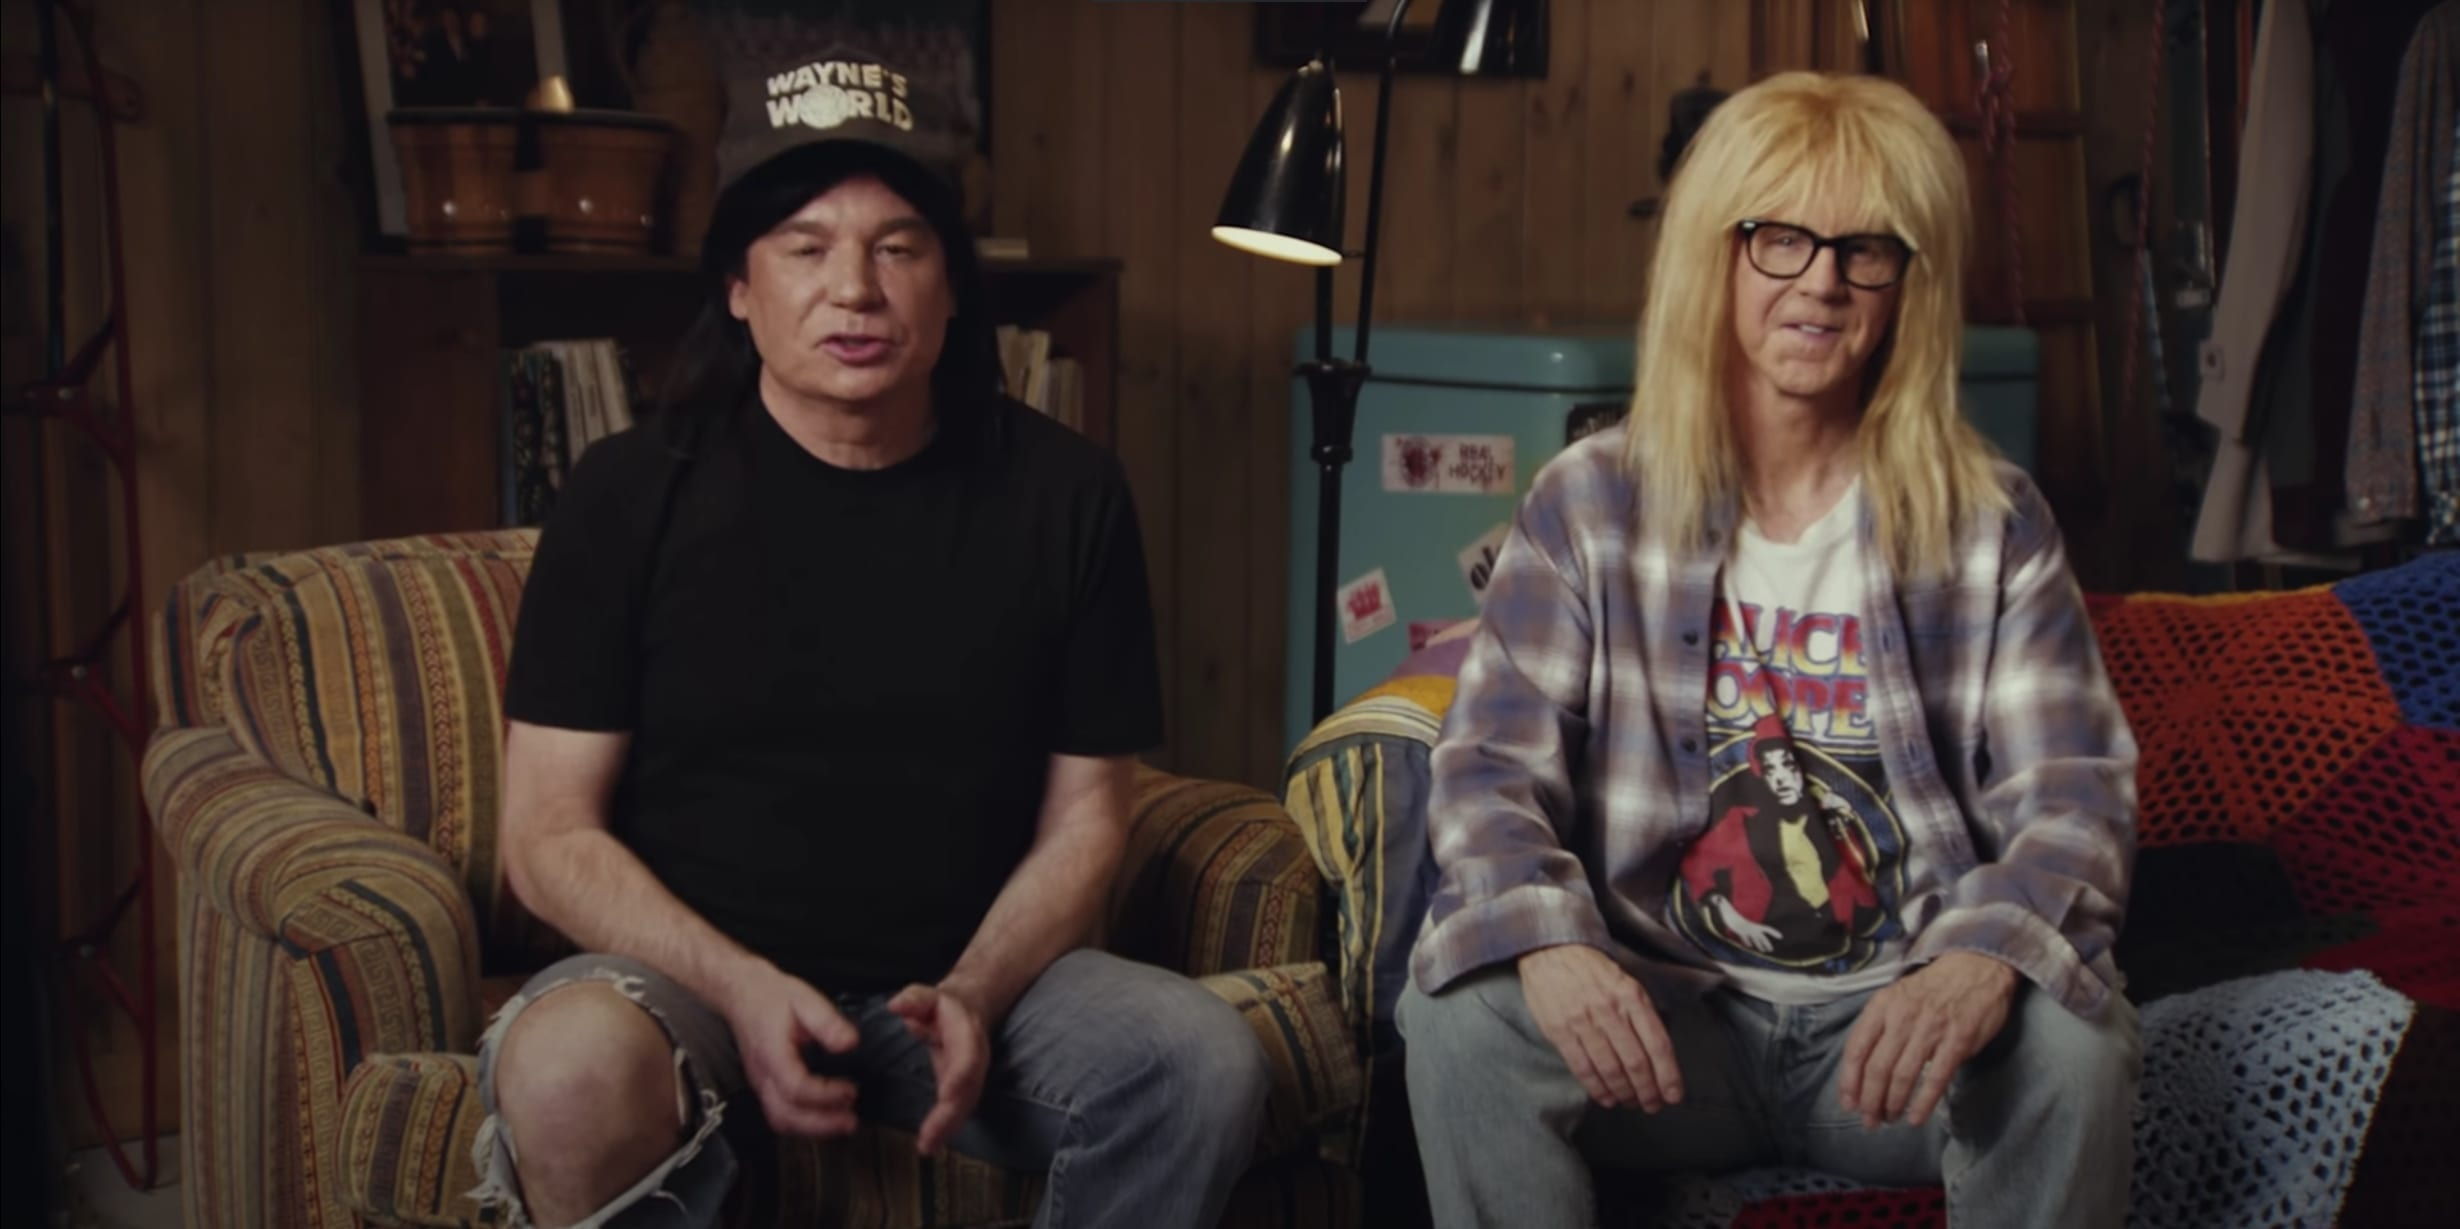 Uber Eats Super Bowl Wayne Garth